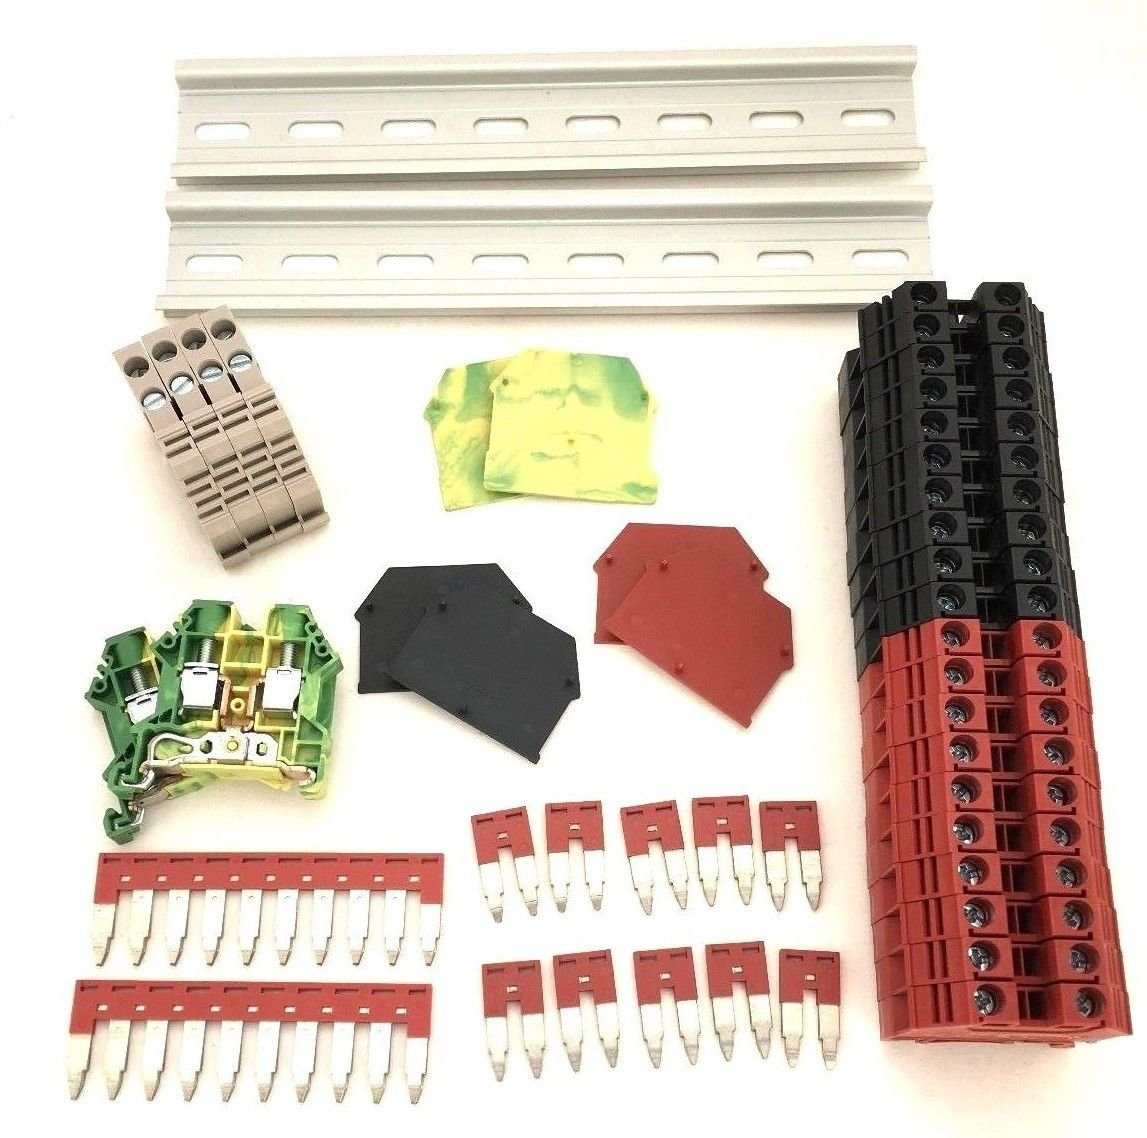 Red//Black DIN Rail Terminal Block Kit Dinkle 20 DK6N 8 AWG Gauge 50A 600V Ground DK6N-PE Jumper DSS6N-02P DSS6N-10P End Covers End Brackets